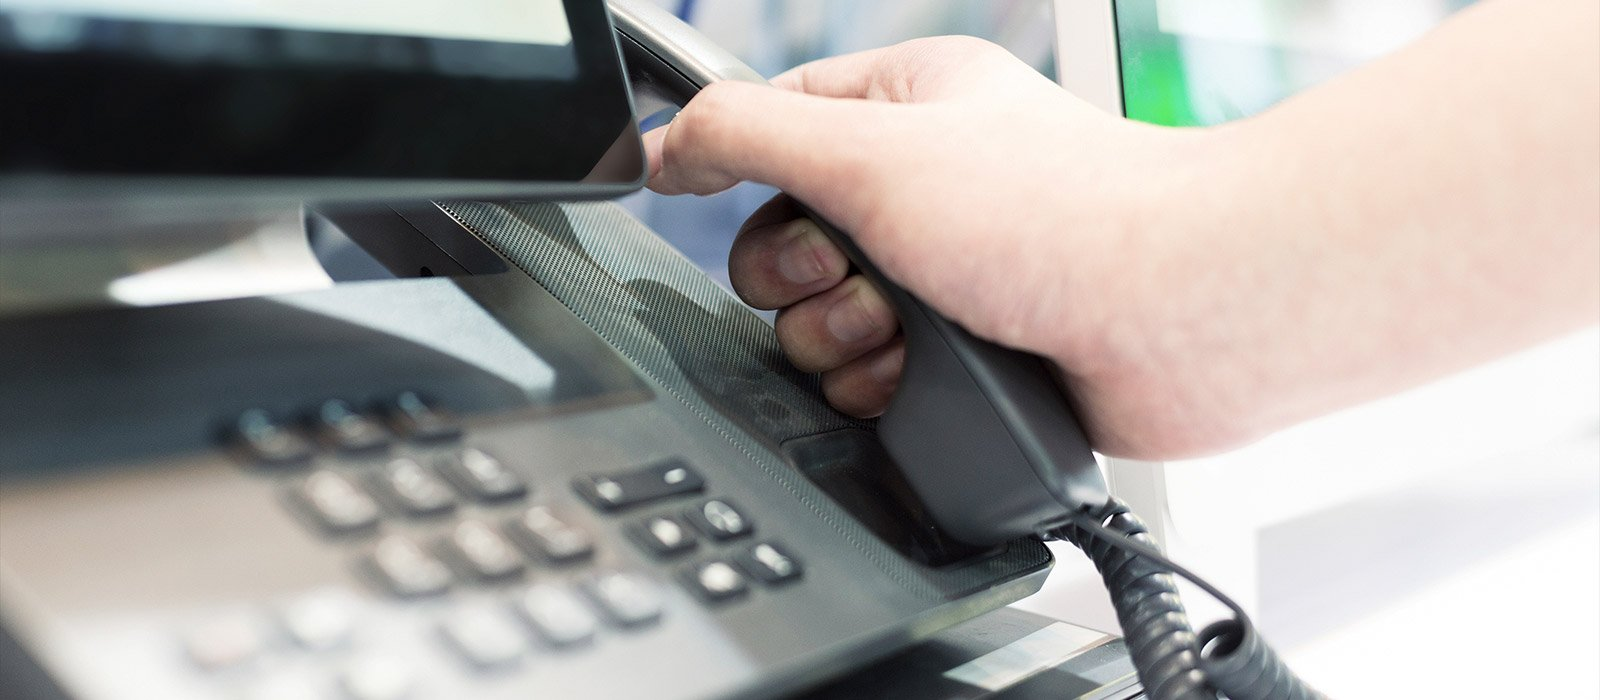 Business Voip Phone Service >> Voip Phone Systems And Services